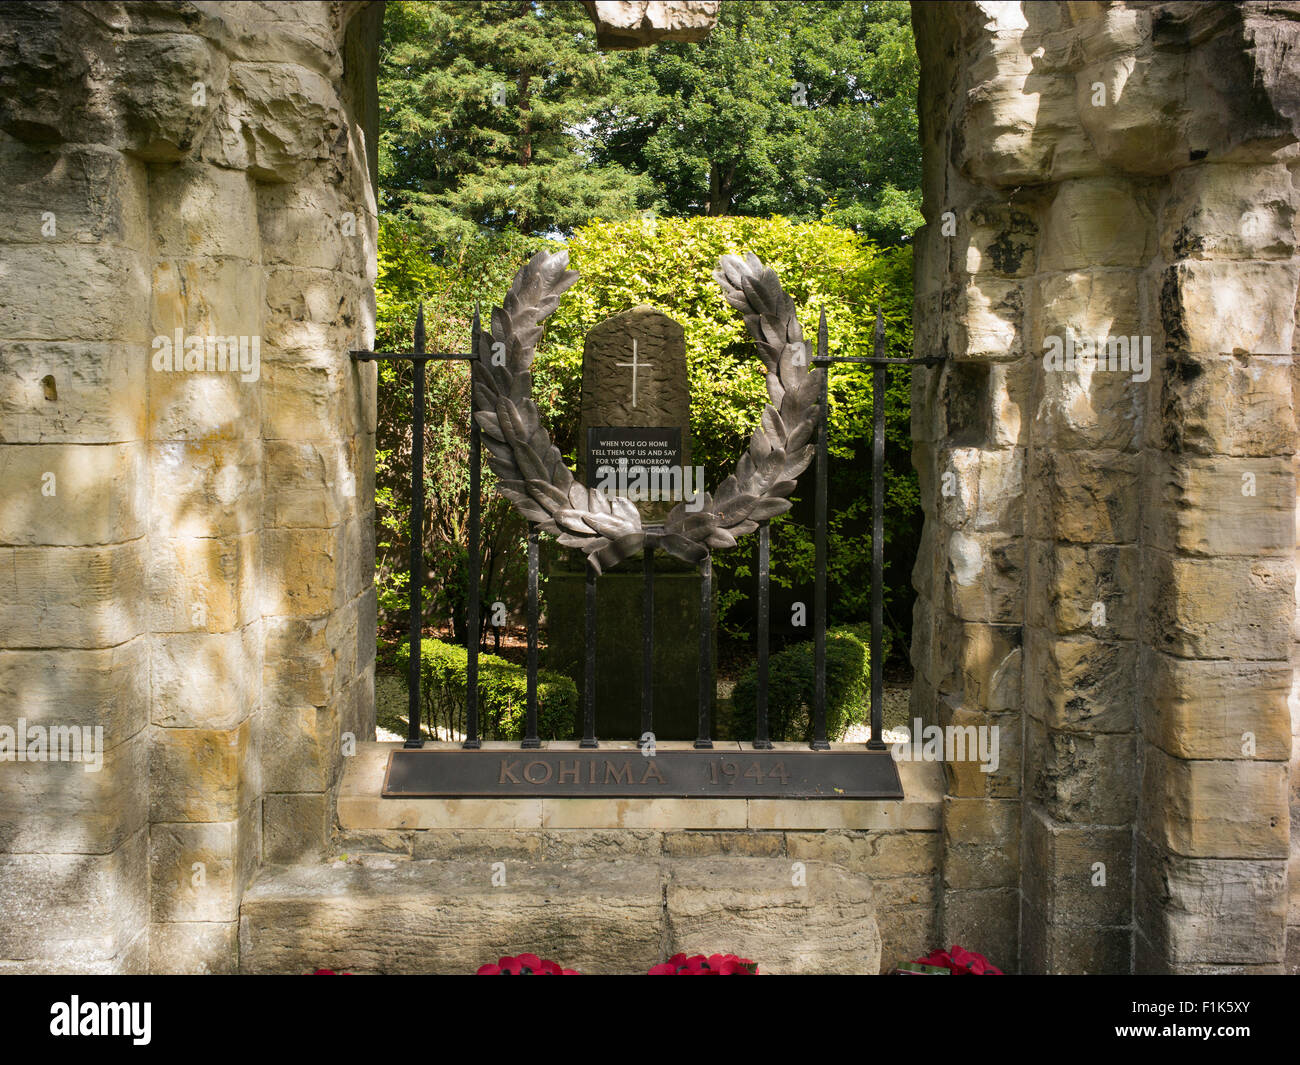 A memorial in honour of the men of the British Army Second Infantry DIvision who died at Kohima in 1944, Dean's - Stock Image